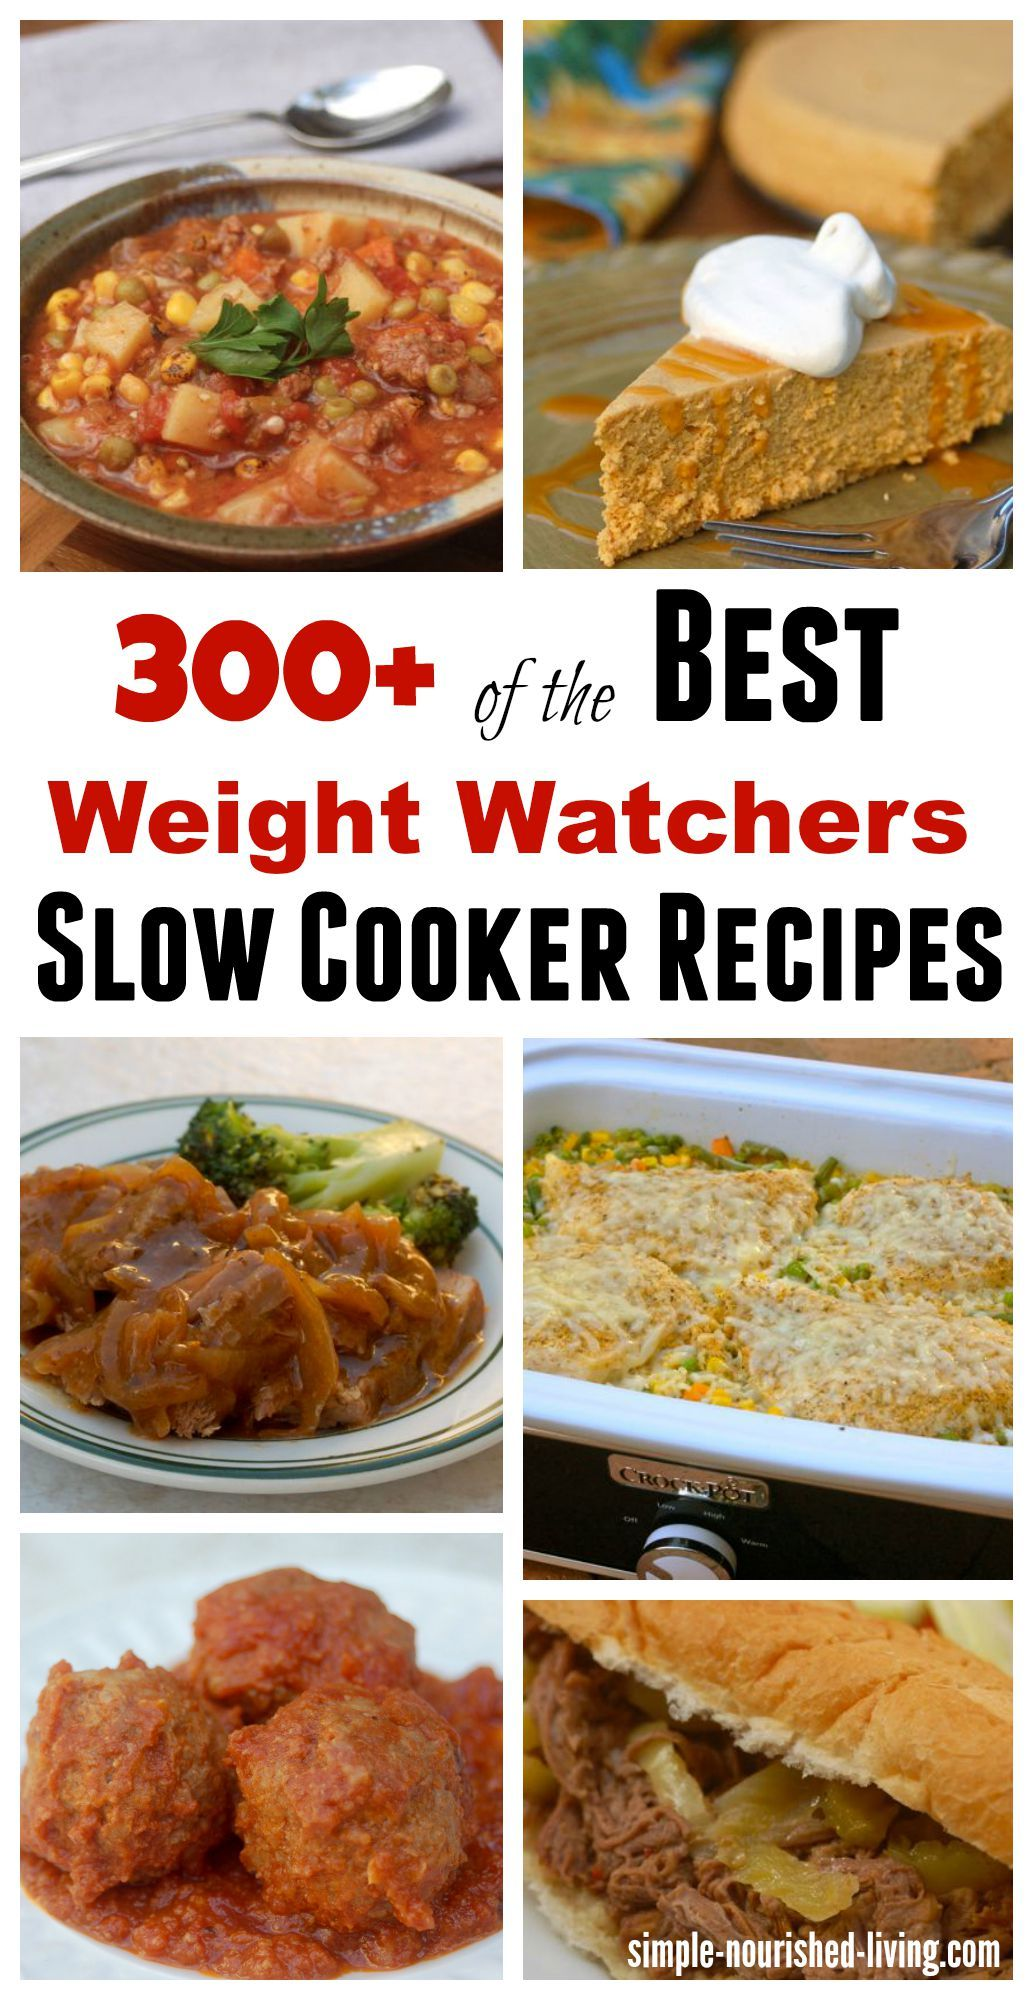 300 of the best weight watchers slow cooker recipes all with 300 of the best weight watchers slow cooker recipes all with calories and points plus forumfinder